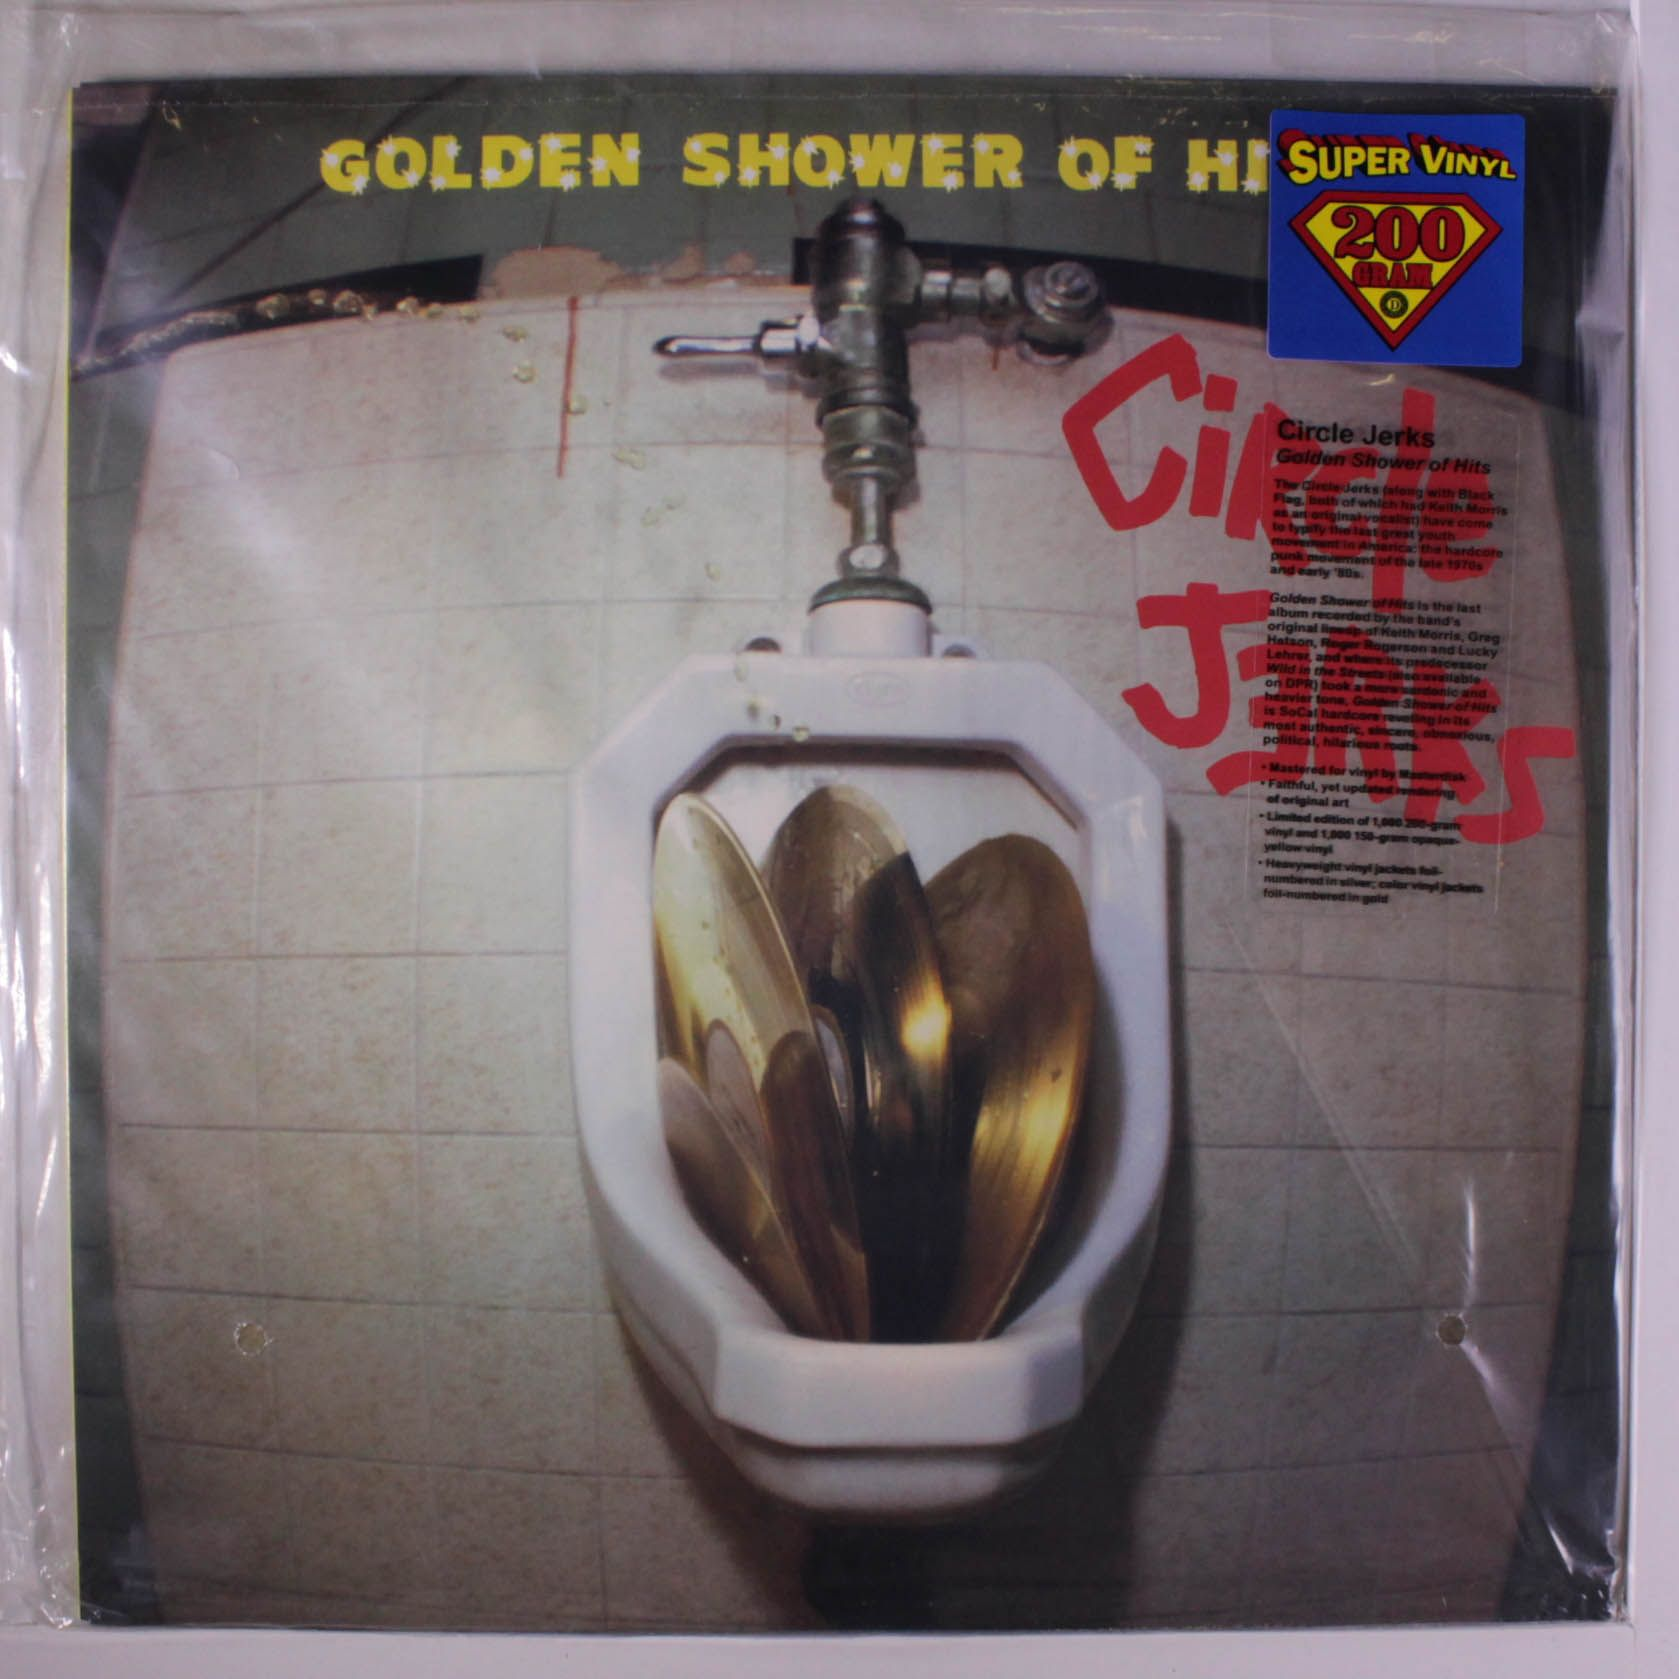 Maddux reccomend Golden shower stereo